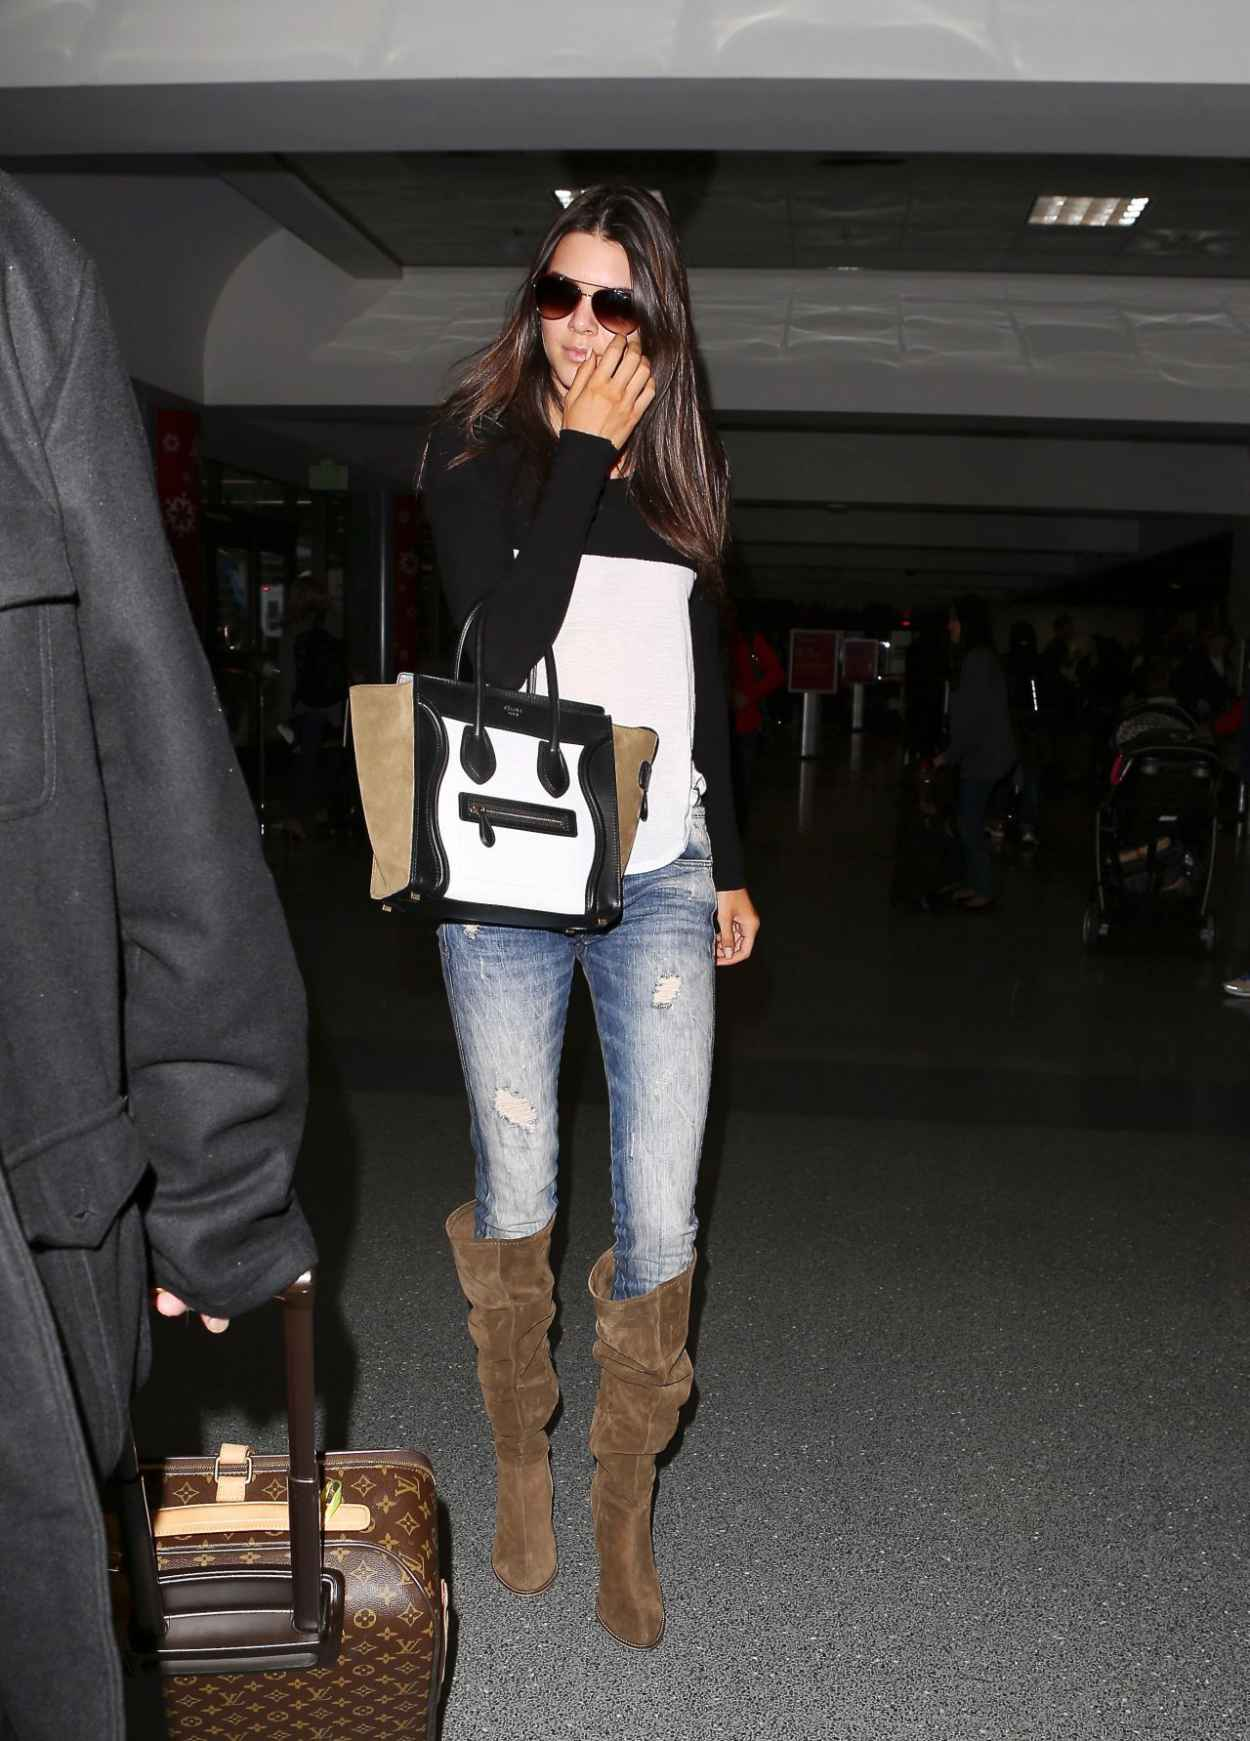 Kendall Jenner in Jeans at LAX Airport - November 2015-1